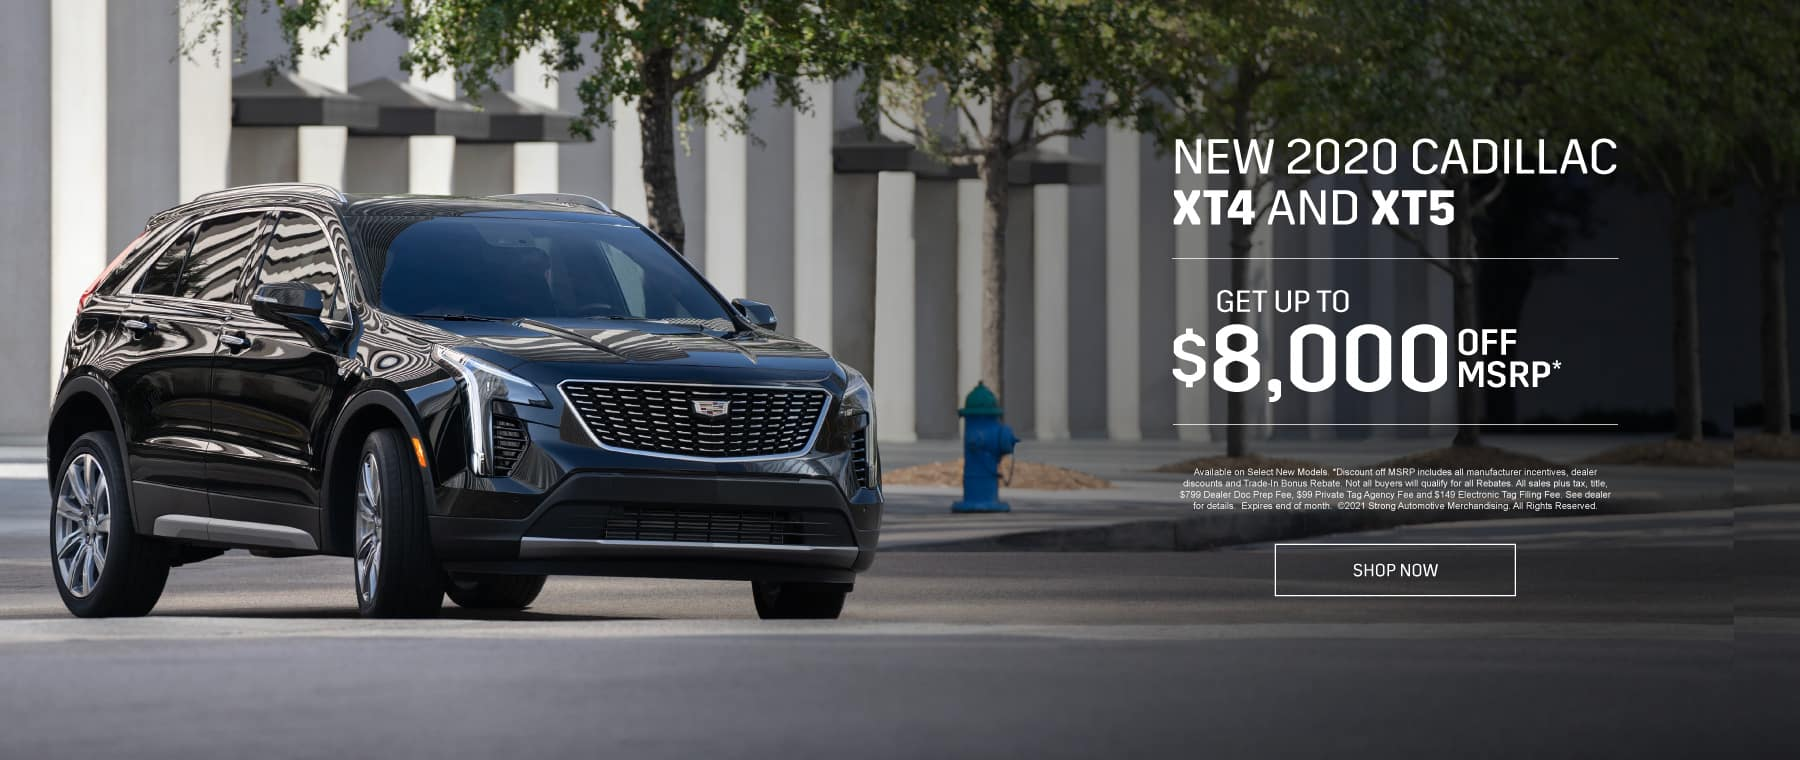 New 2020 Cadillac XT4 and XT5 - Get up to $8000 off msrp - Shop Now